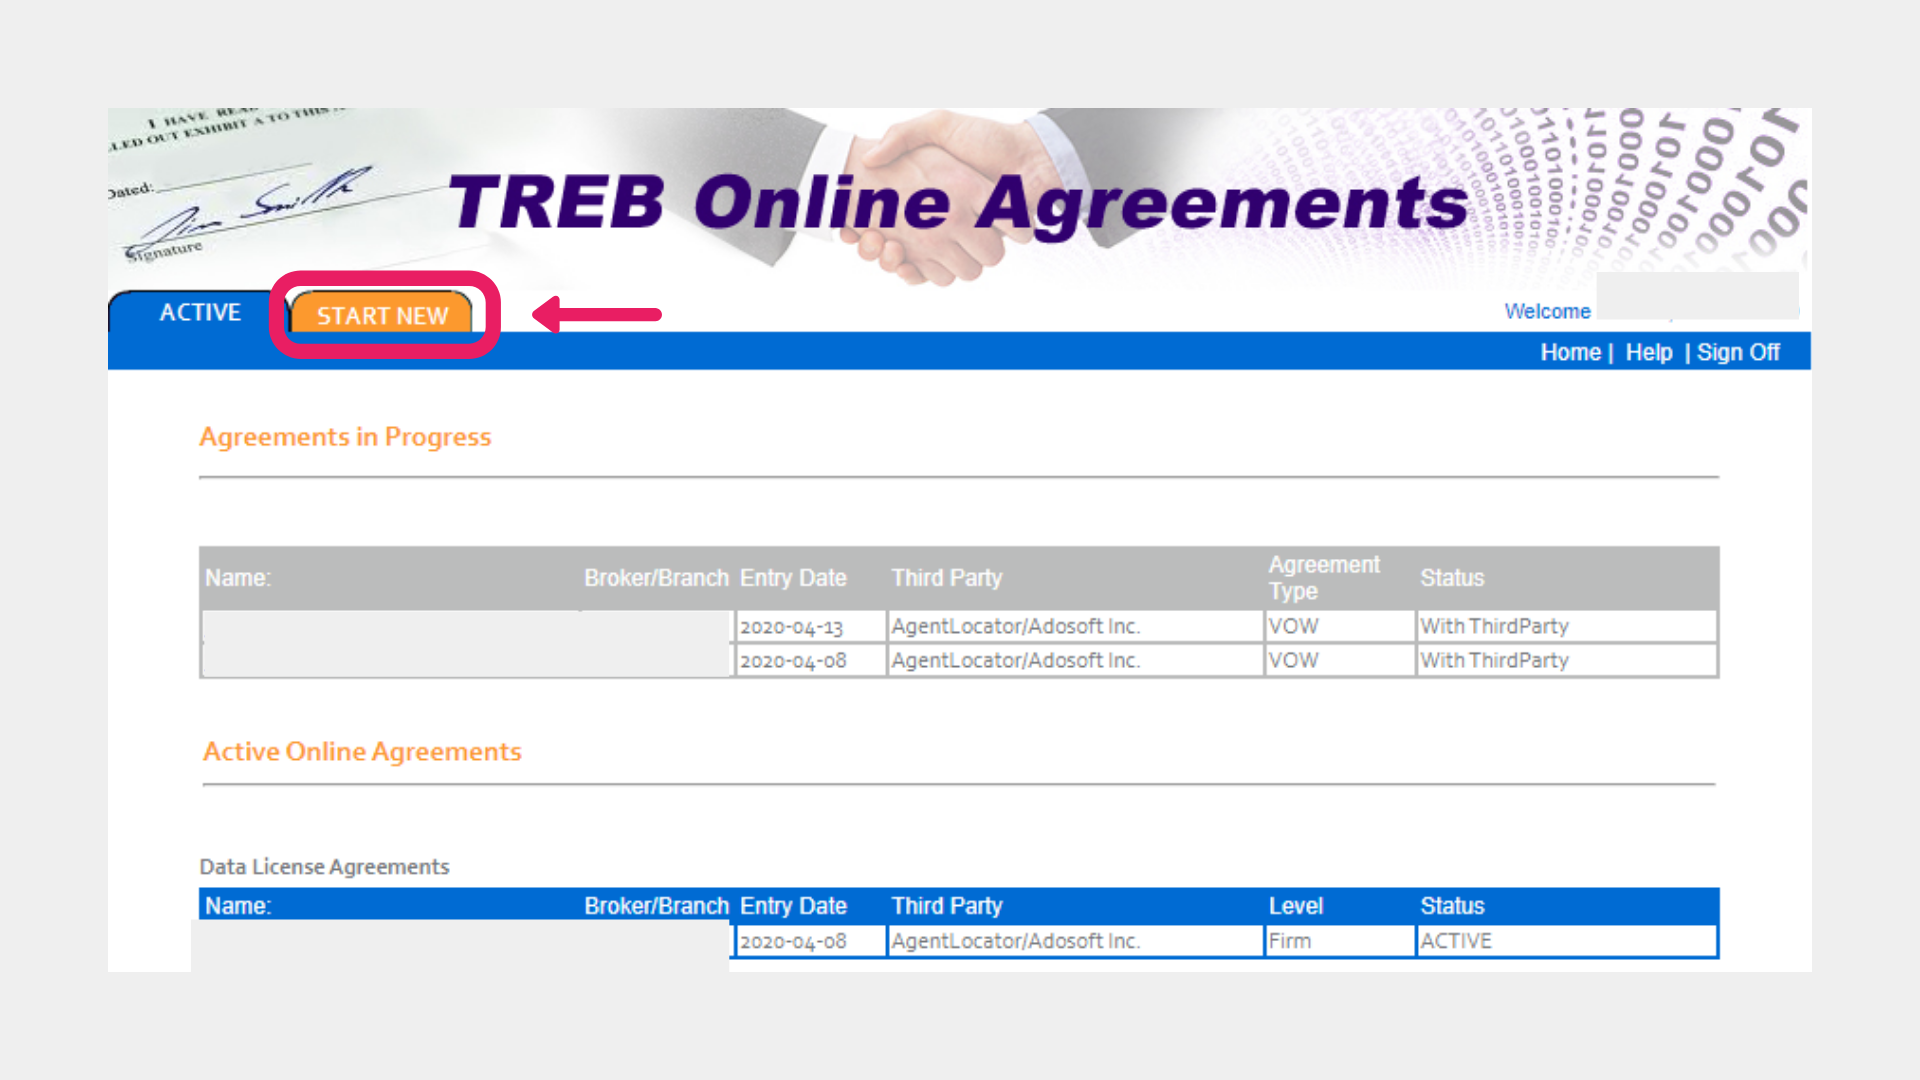 TRREB_Online_Agreements_-_Guideline__15_.png